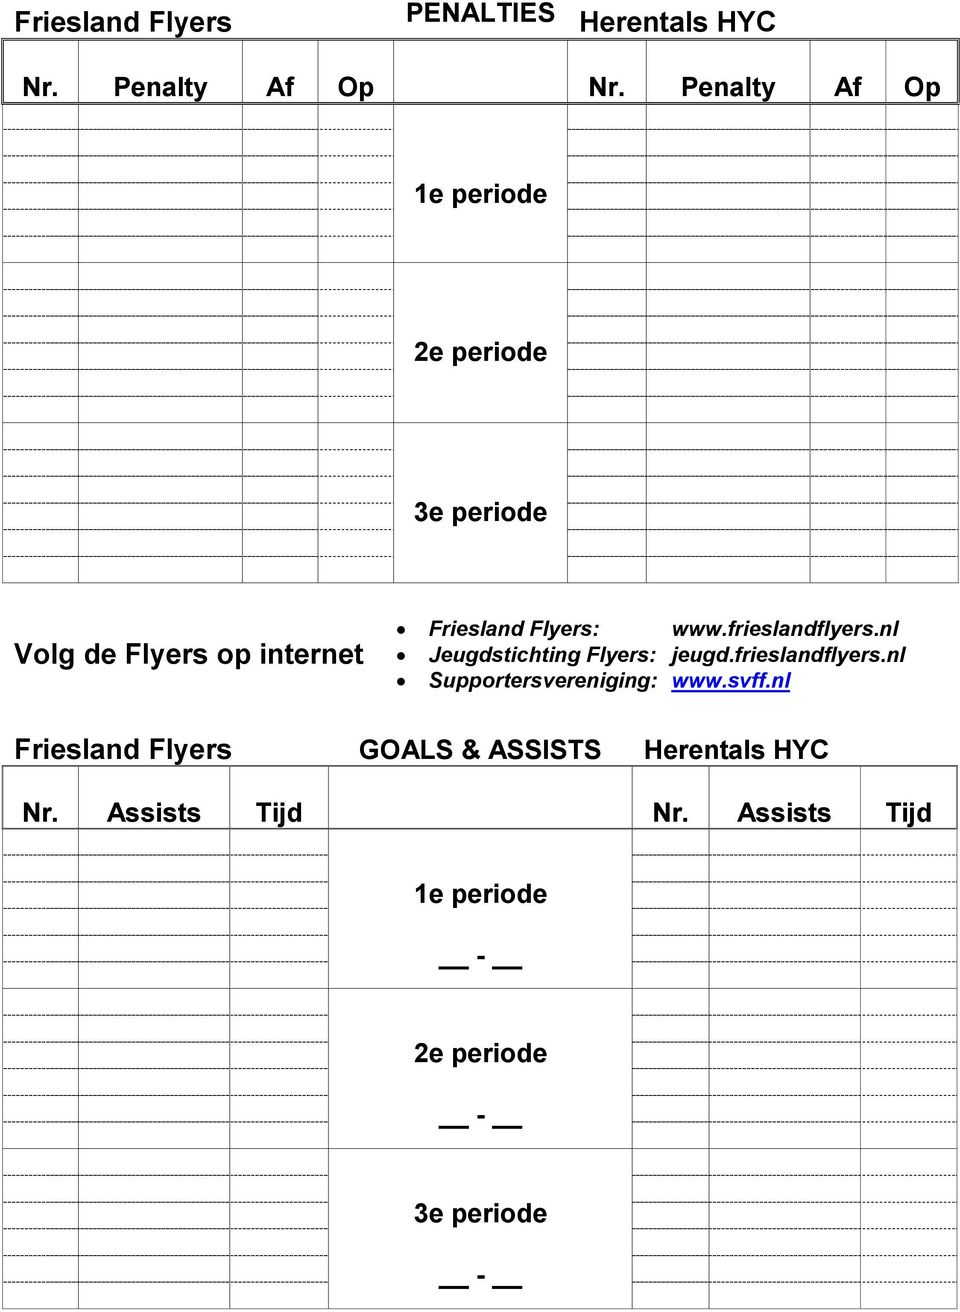 www.frieslandflyers.nl Jeugdstichting Flyers: jeugd.frieslandflyers.nl Supportersvereniging: www.